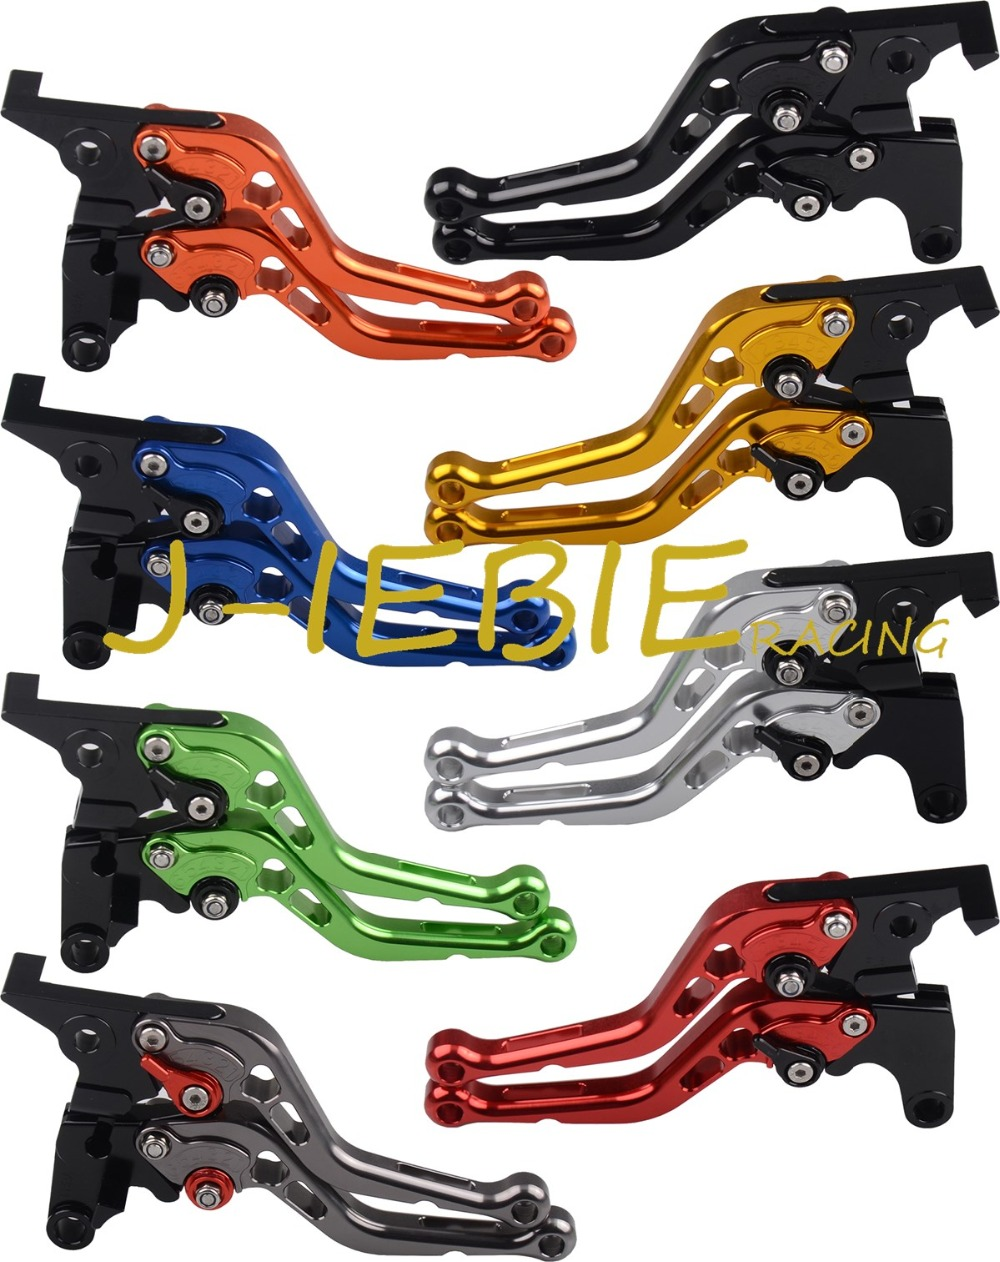 For Ducati 1098/S/Tricolor 2007-2008 1198/S/R 2009-2011 848/EVO 2007-2013 157 New CNC Adjuster Brake Clutch Levers